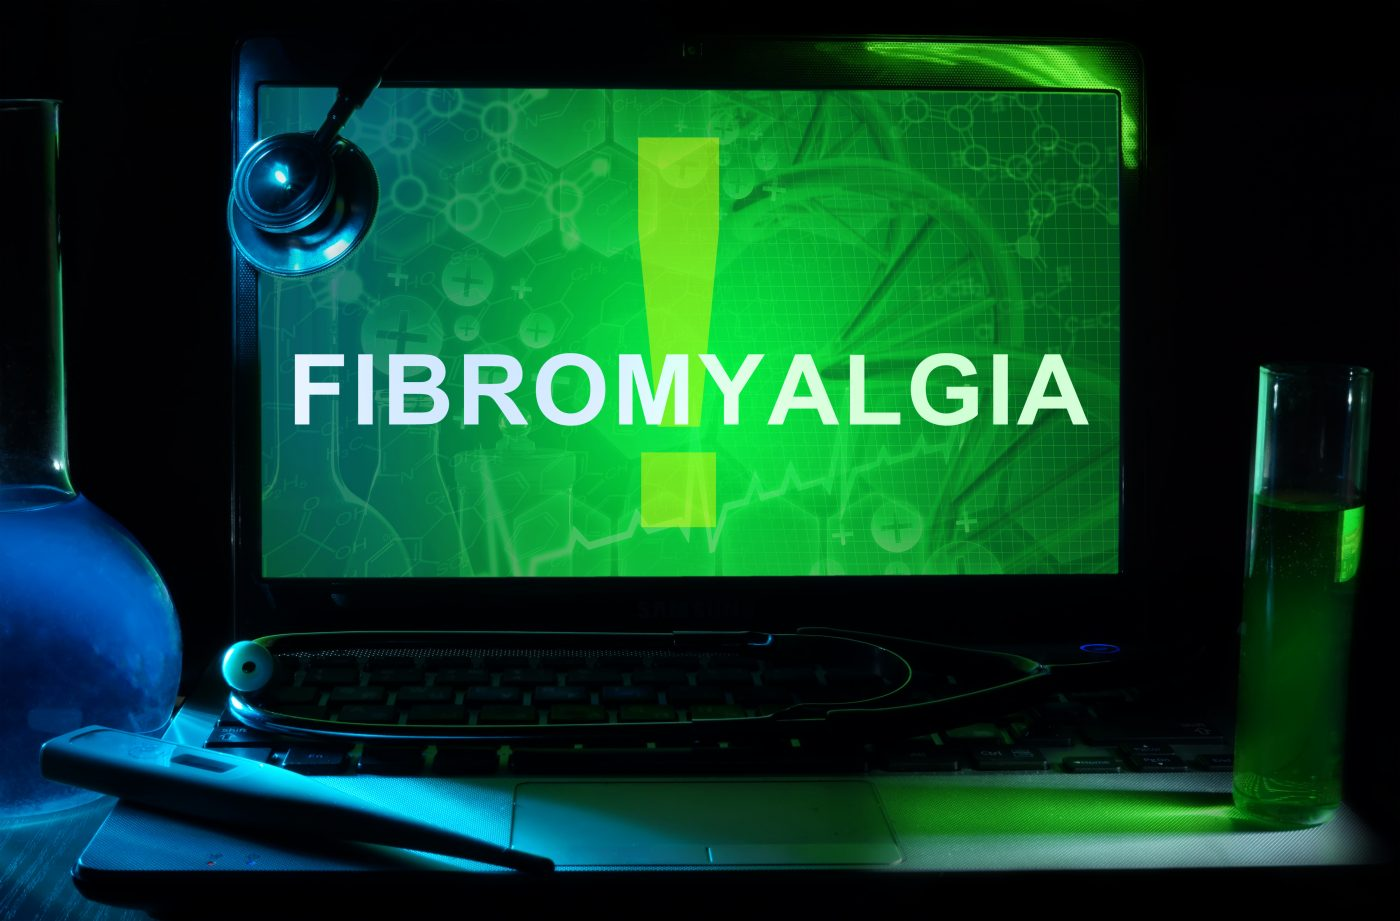 Healthcare Use Remains High in Patients with Fibromyalgia Before and After Treatment Initiation